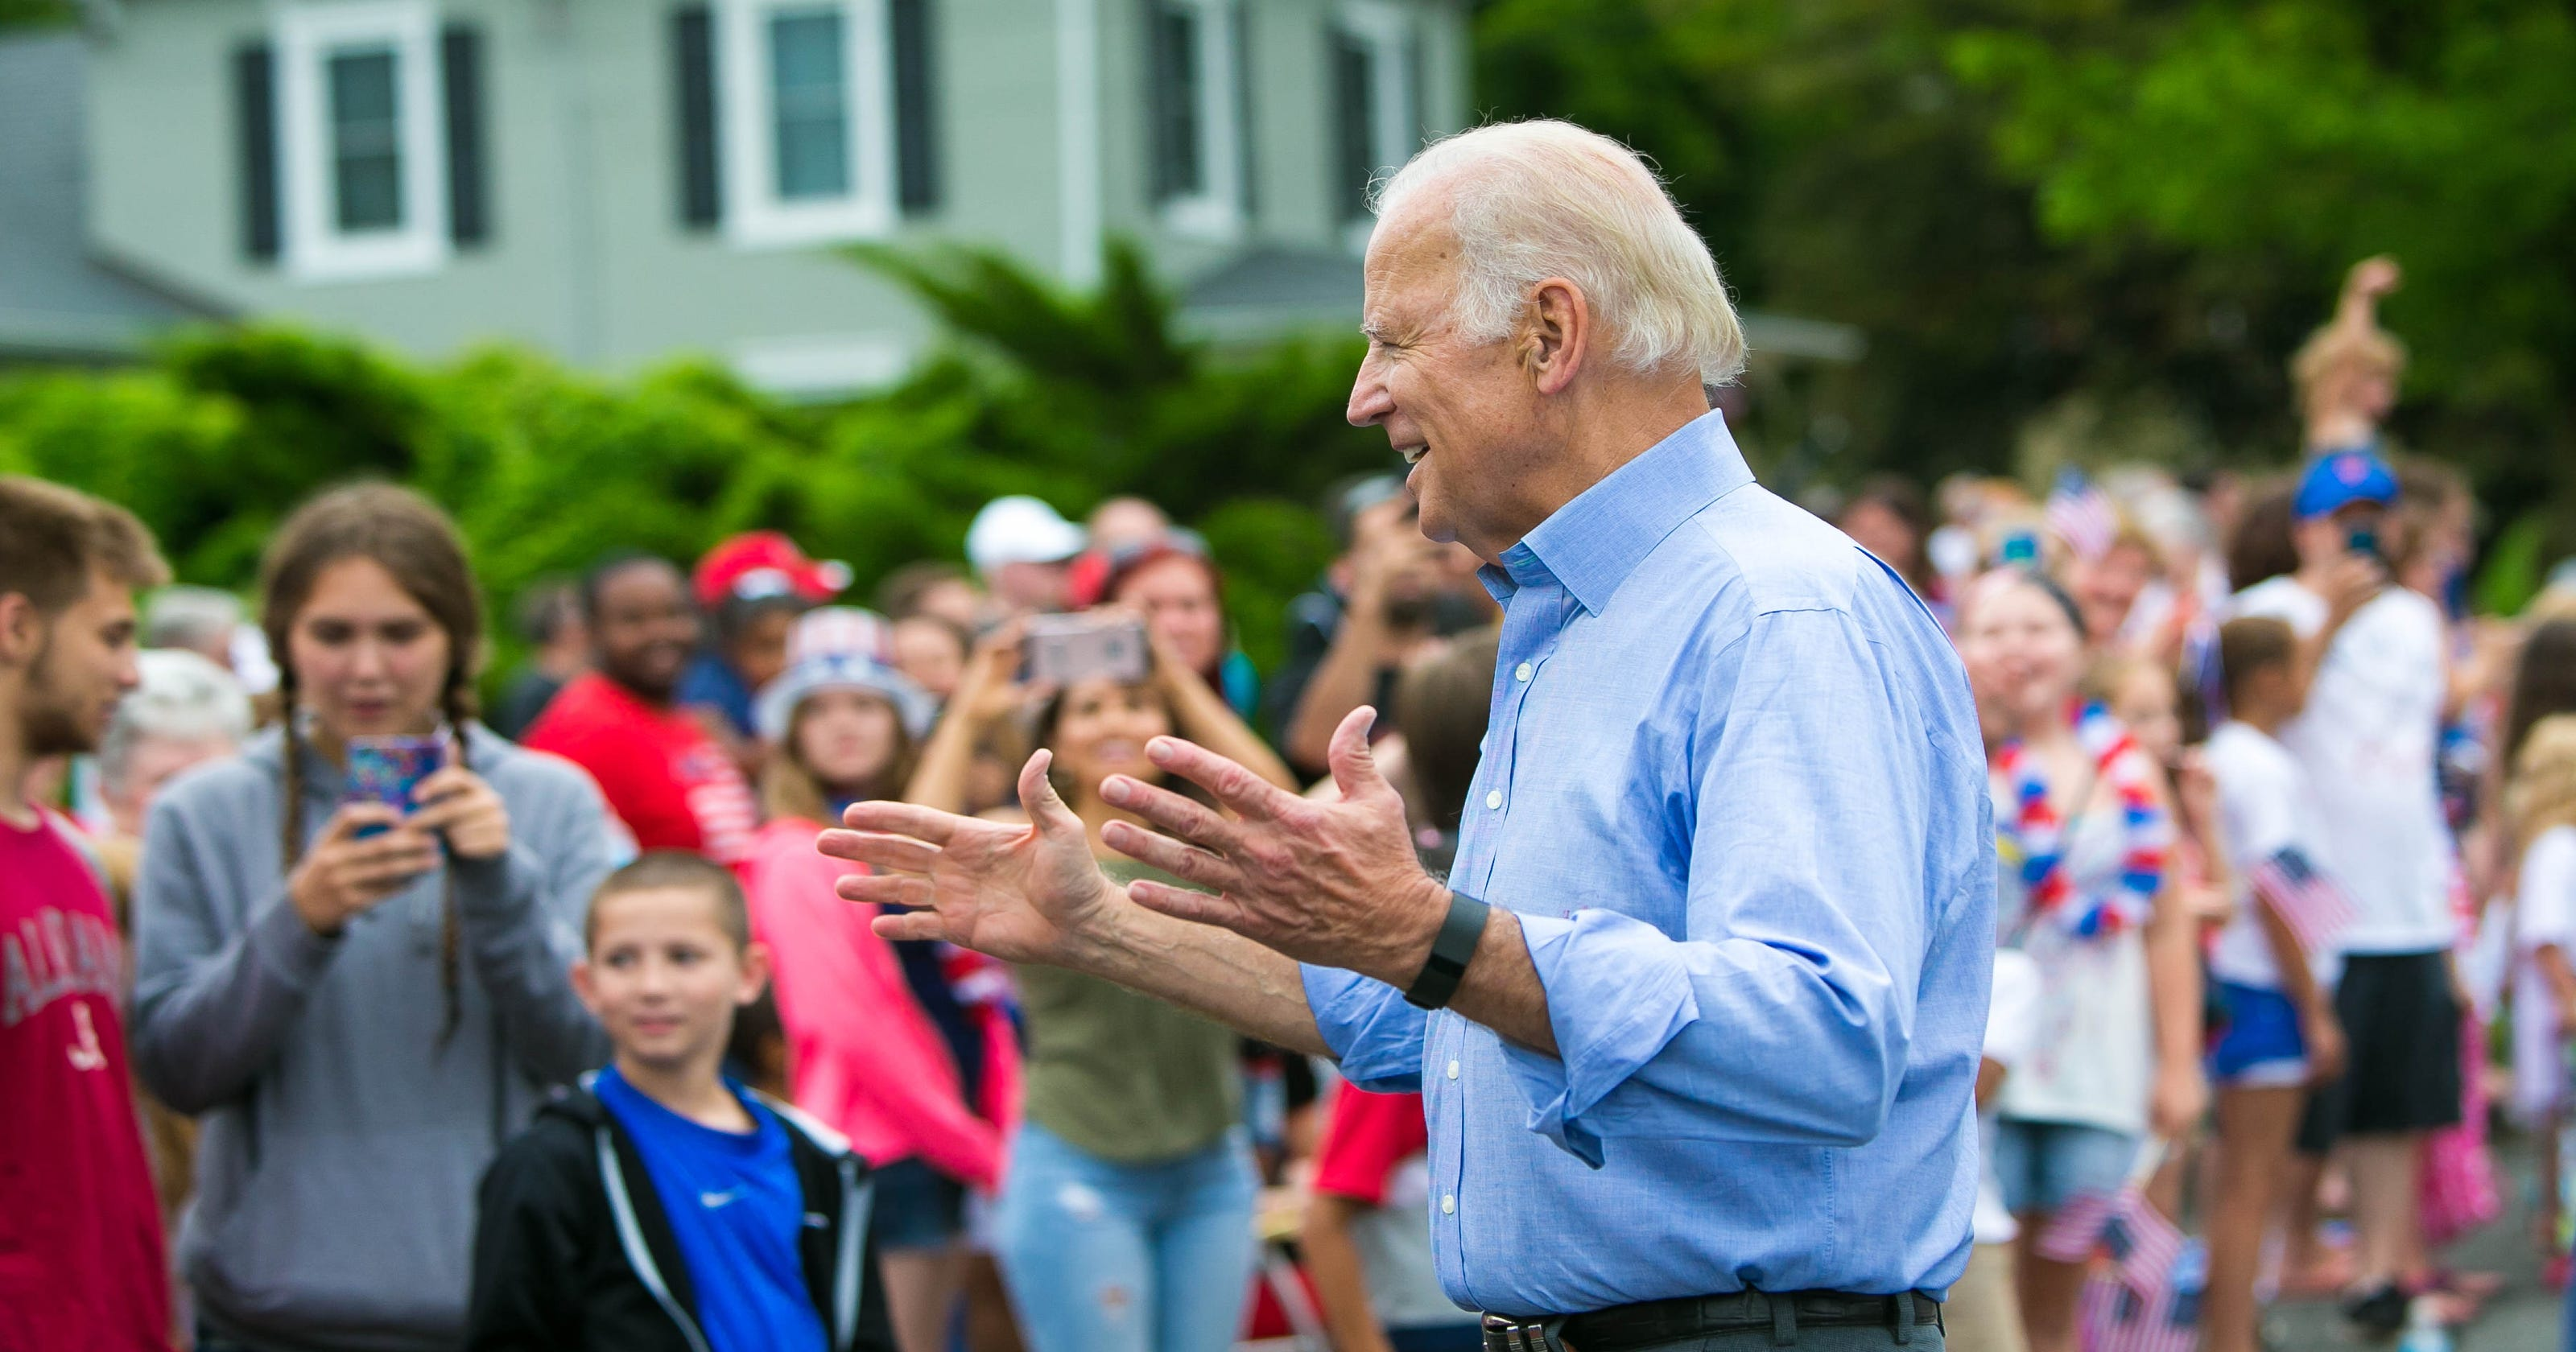 Amid threat of rain, Biden returns for July Fourth parade